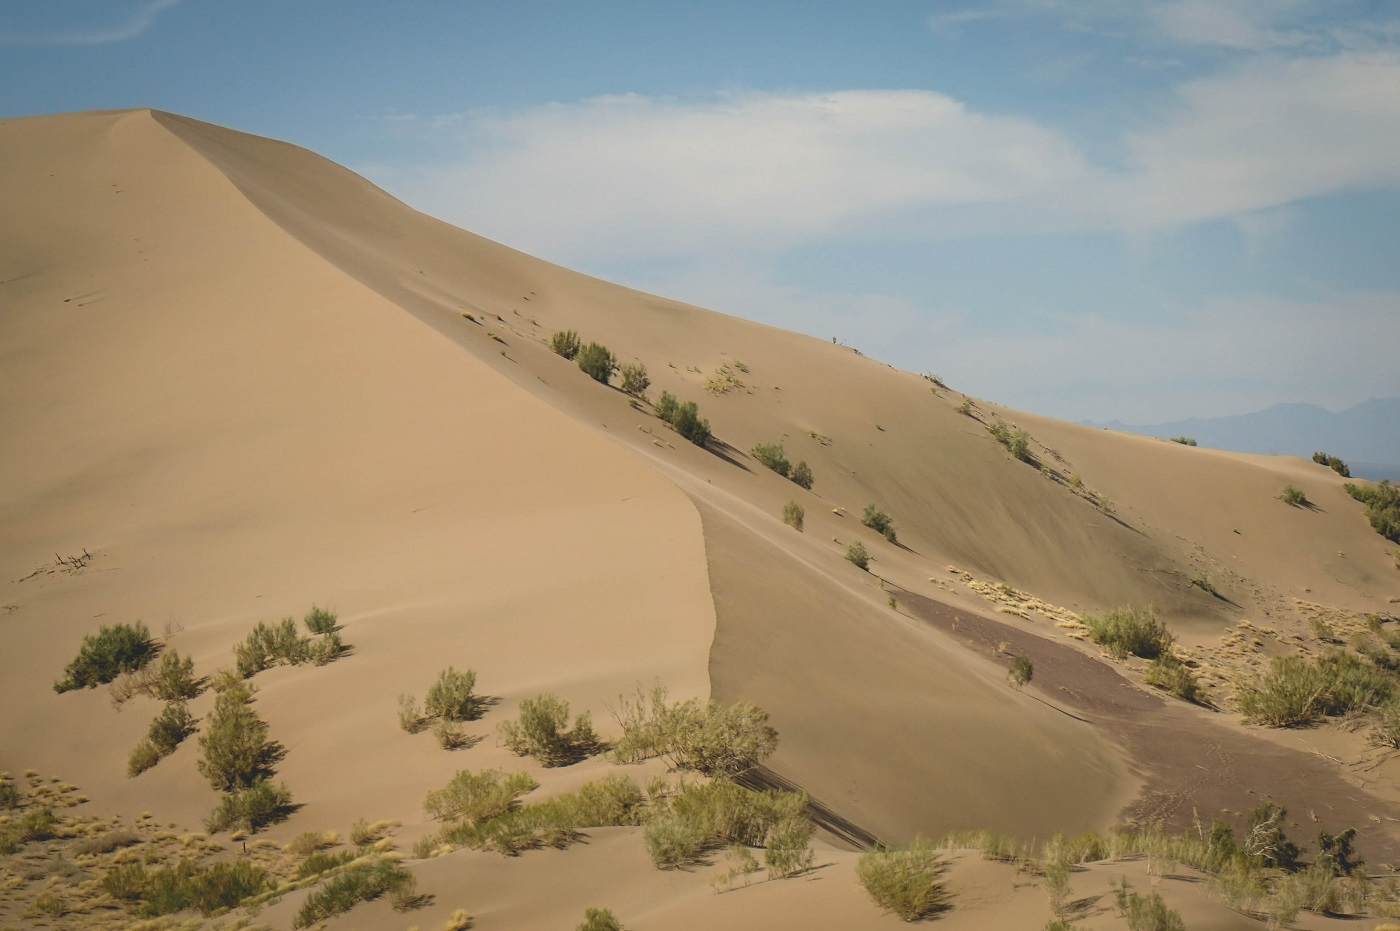 DariusRoby.com - Climbing the singing dunes in Kazakhstan. The climb gives the impression of being perilous but the sand is so thin and soft that each step easily left me trudging knee deep.